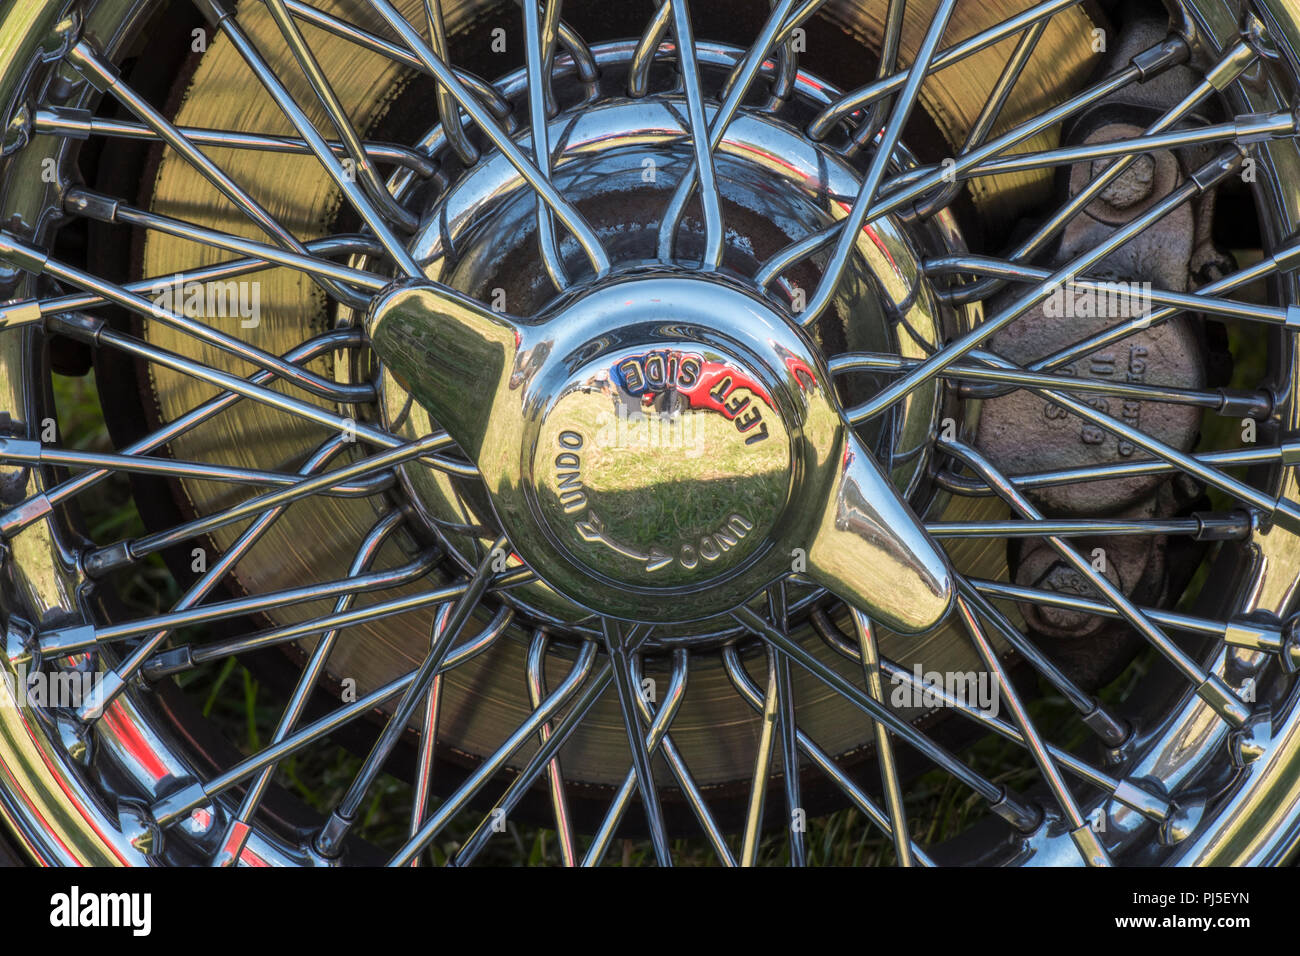 vintage sports car chromed spoked wheel with spinner and disc brakes